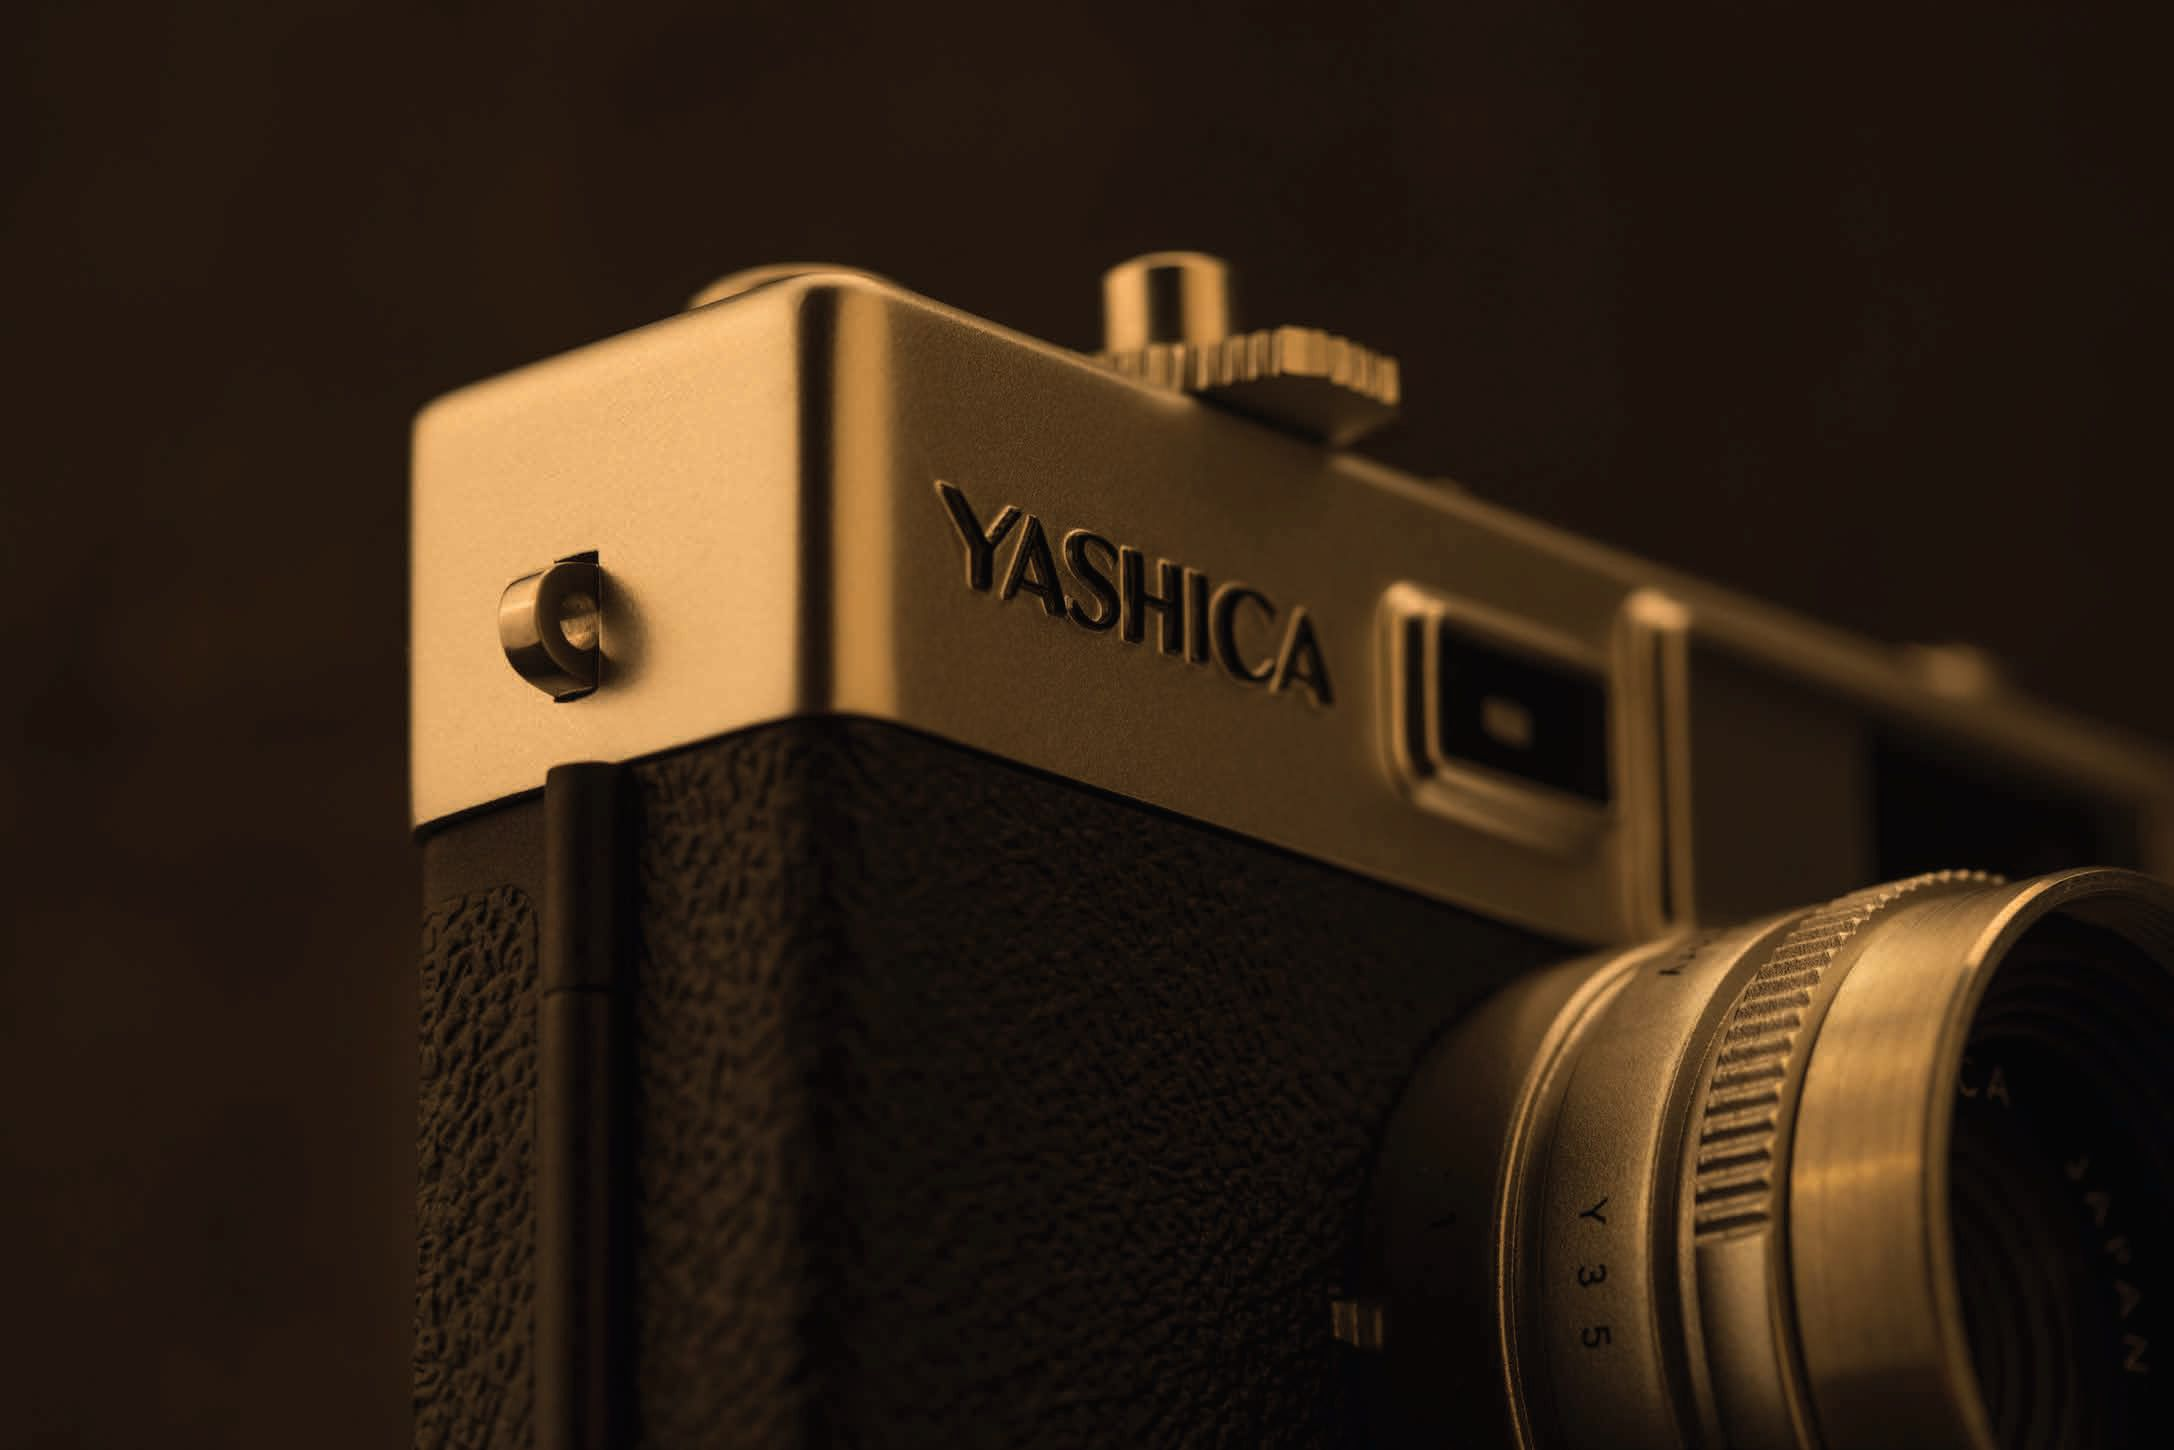 【現代に蘇るヤシカ】YASHICA digiFilm camera Y35